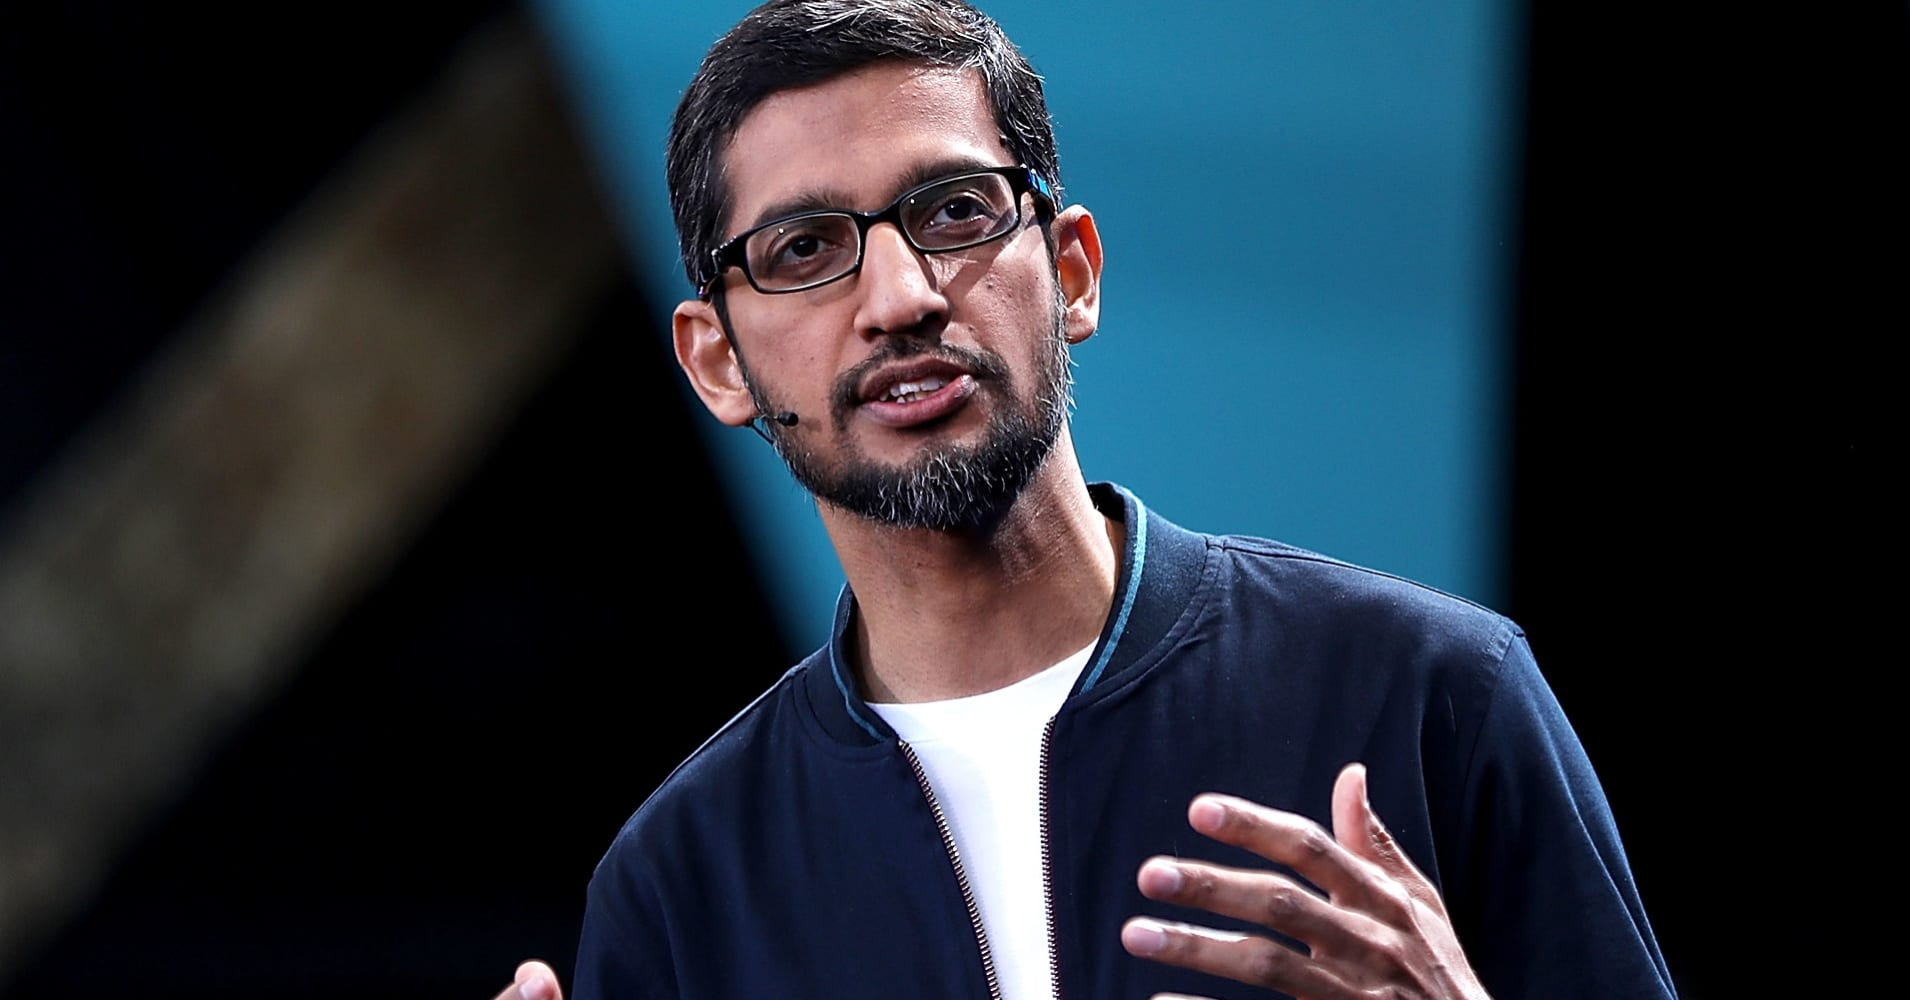 Google CEO defends firing employee for 'sexist memo'